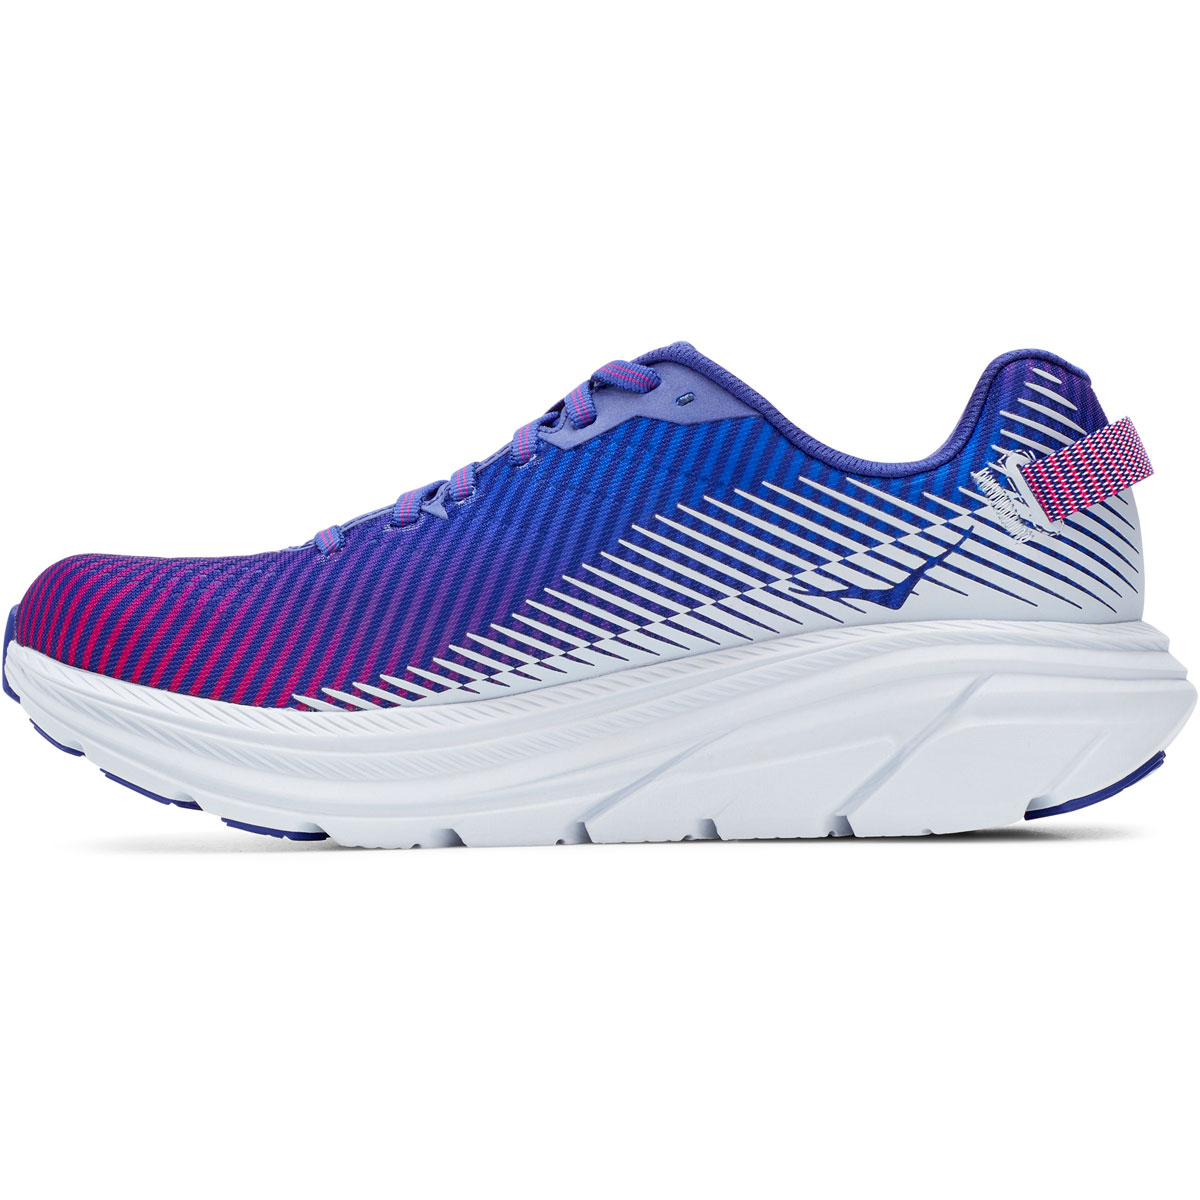 Women's Hoka One One Rincon 2 Running Shoe - Color: Clematis Blue - Size: 5 - Width: Regular, Clematis Blue, large, image 6